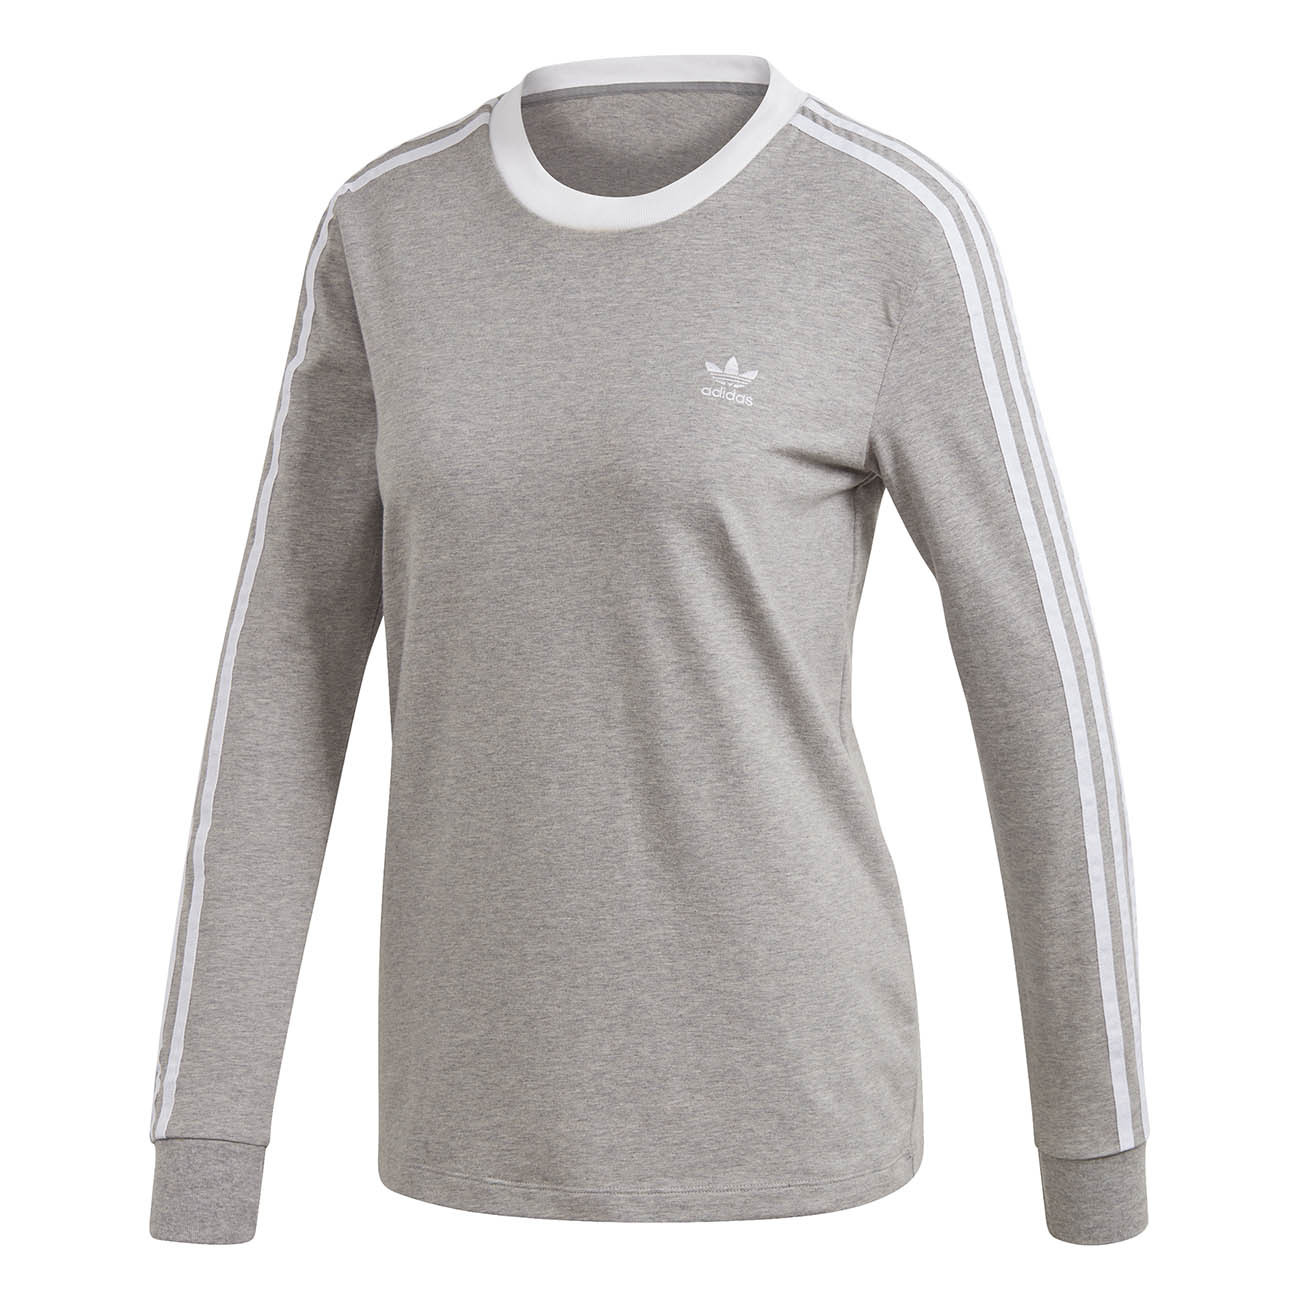 Tričko Adidas 3-Stripes Ls